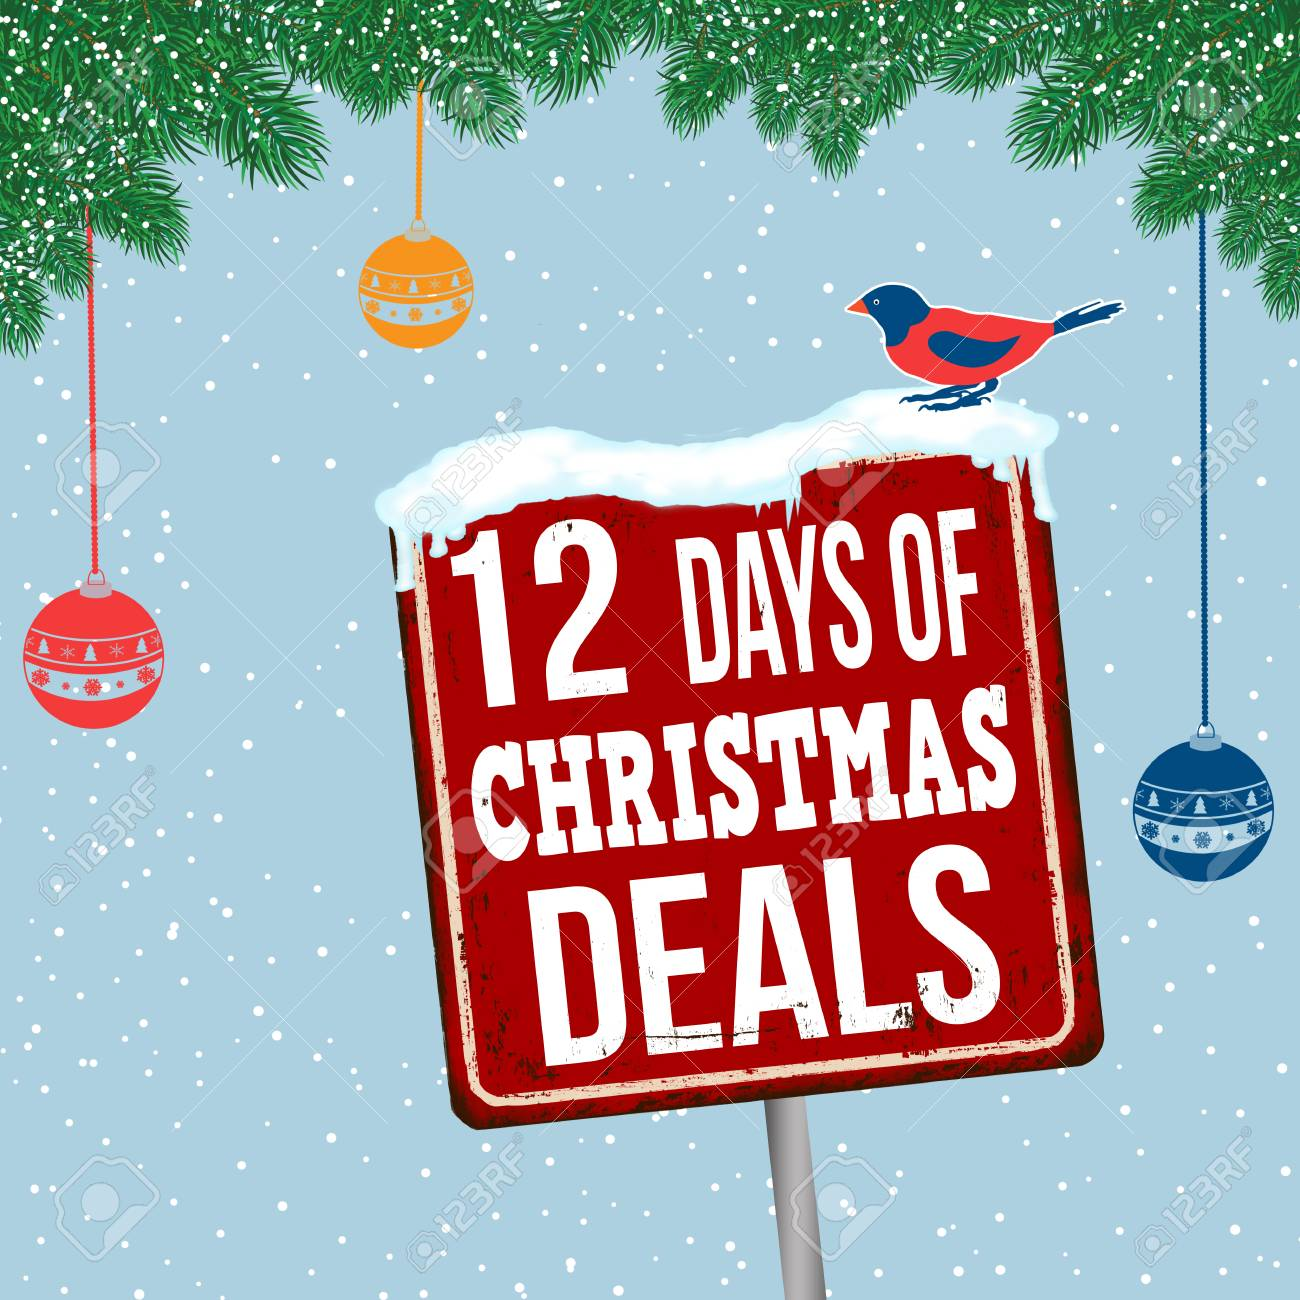 Christmas Deals.12 Days Of Christmas Deals Vintage Rusty Metal Sign On Christmas